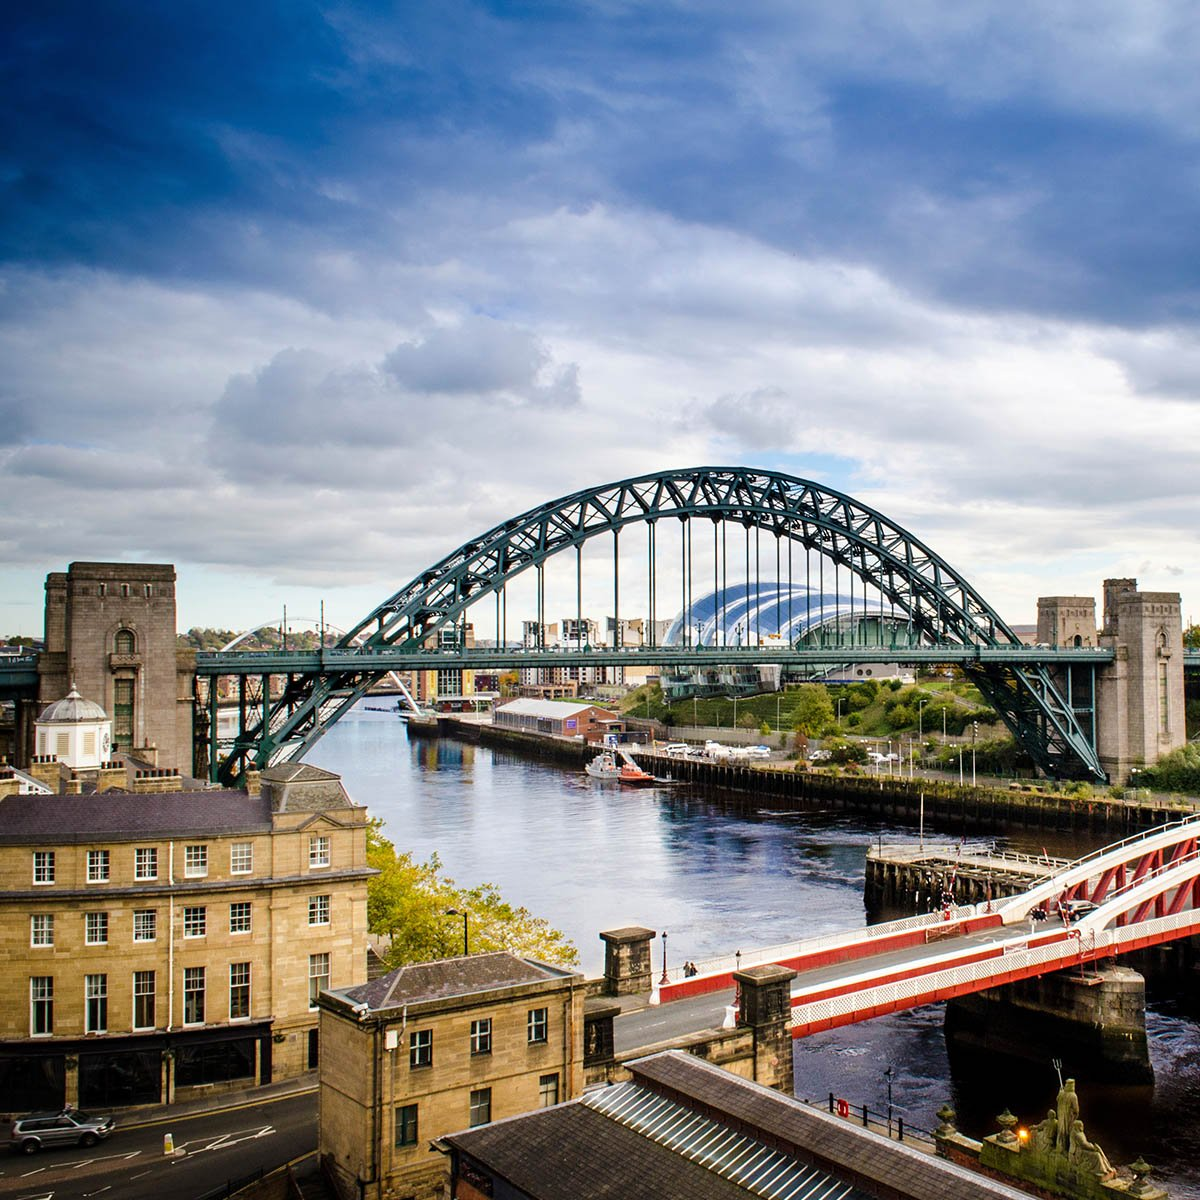 Aberdeen to Newcastle & Durham Tees Valley. Daily weekday flights & Sunday service. Book Now